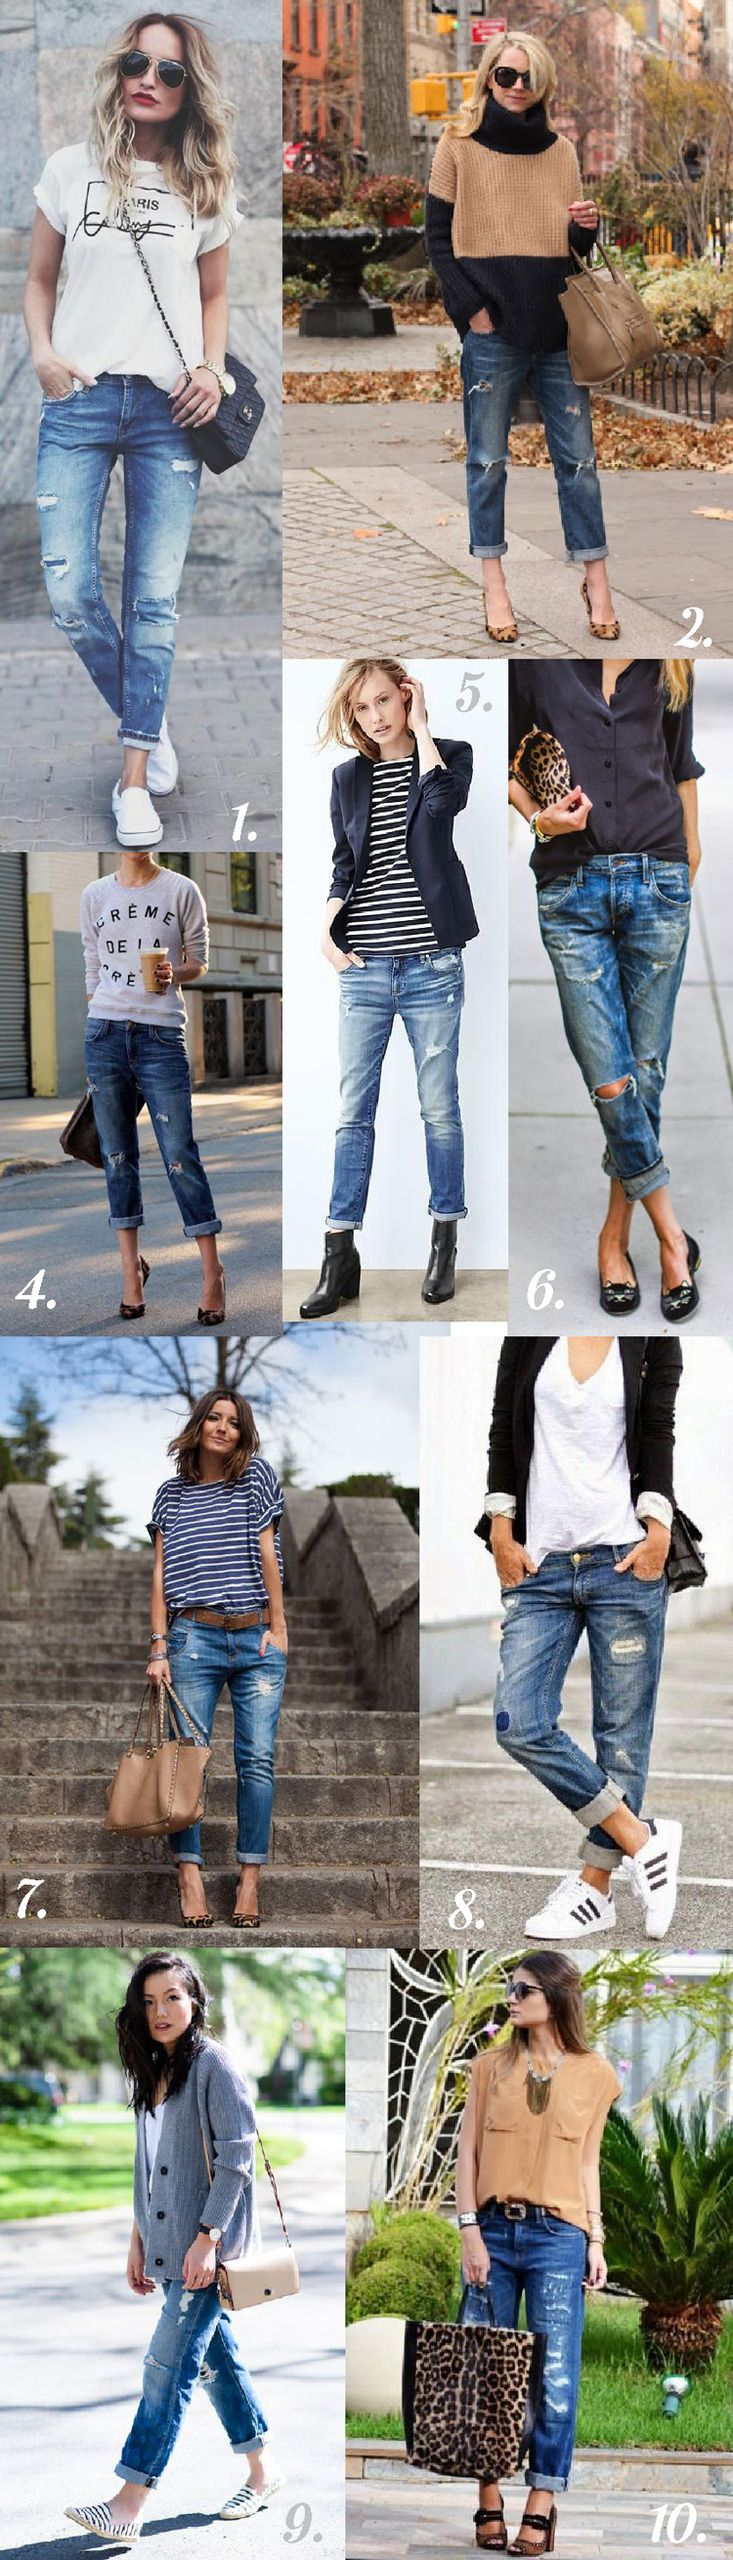 Distressed boyfriend jeans • Closet Case Files http://closetcasefiles.com/morgan-boyfriend-jeans-stlying-inspiration/